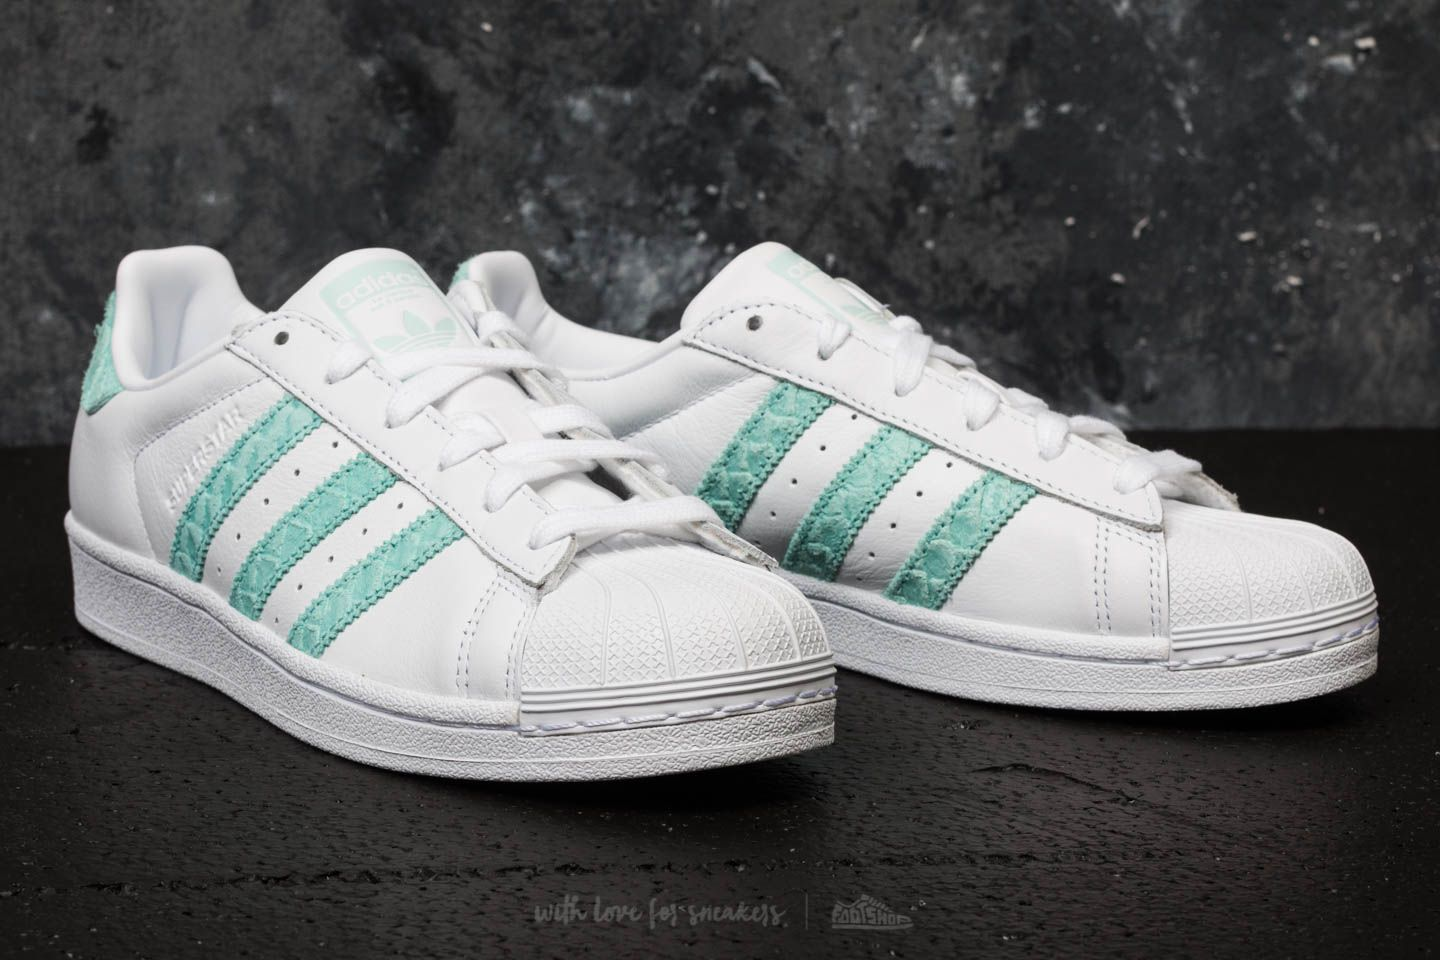 adidas Superstar W Ftw White  Supplier Colour  Off White at a great price 99 f85c65b54147